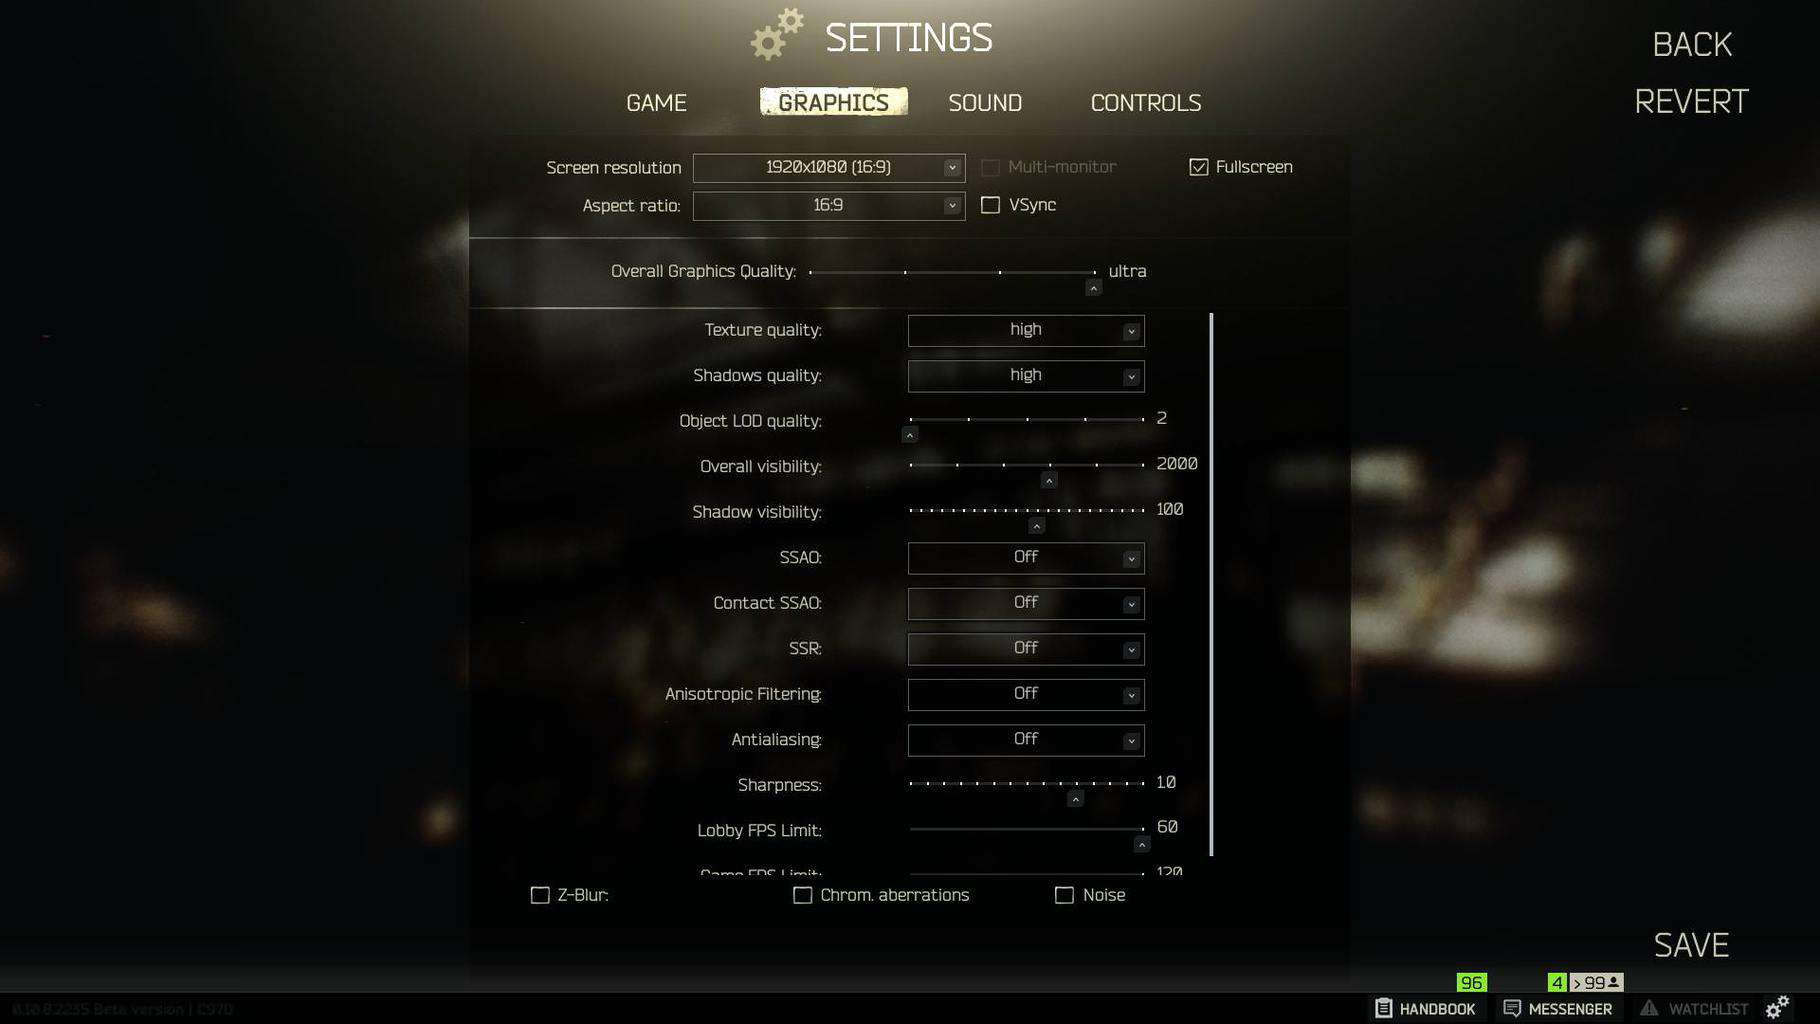 Best Escape From Tarkov Settings - All Settings Explained